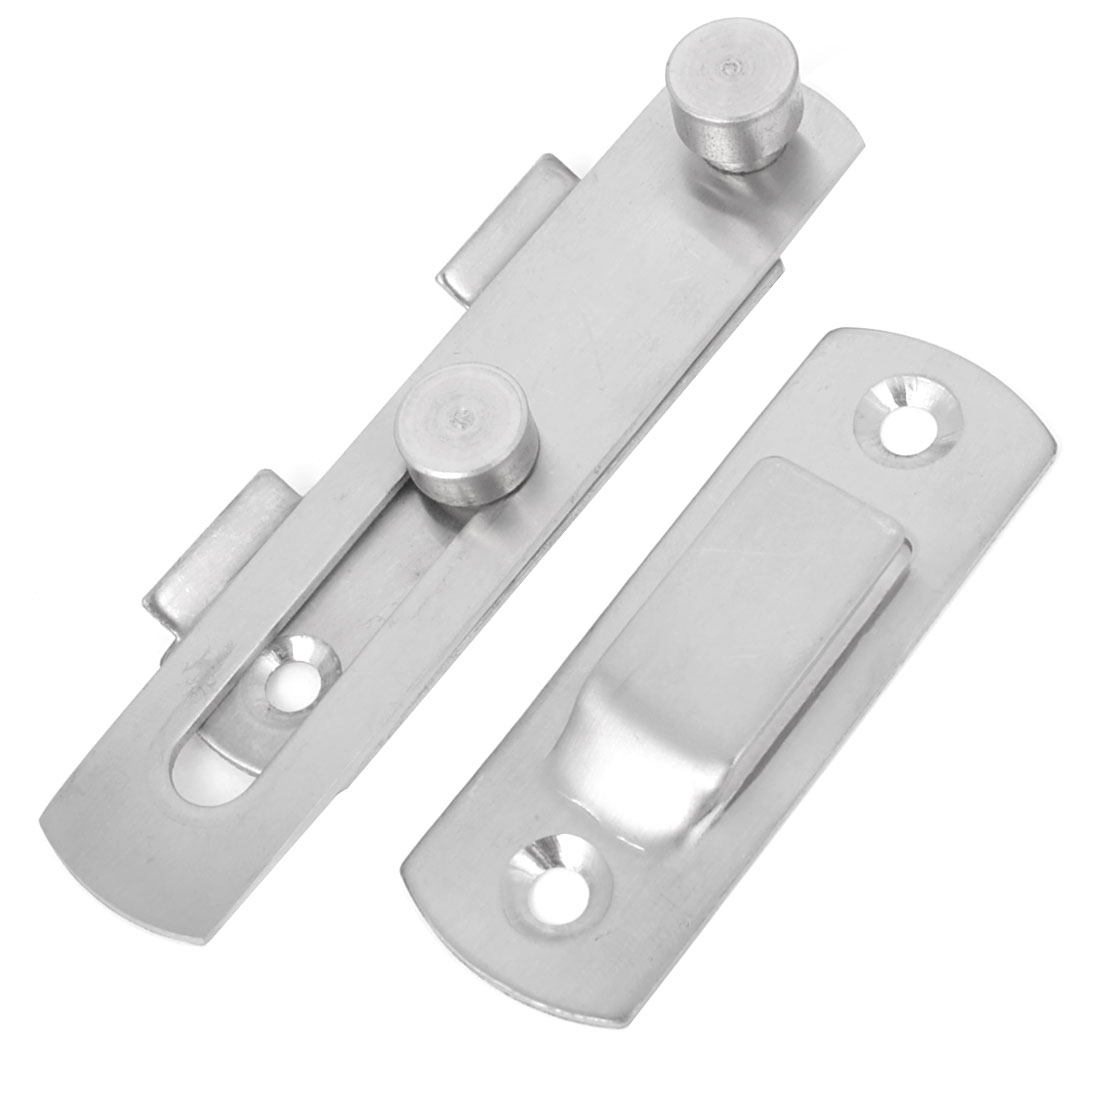 Office Silver Tone Stainless Steel Door Latch Catch Bolt Guard Set